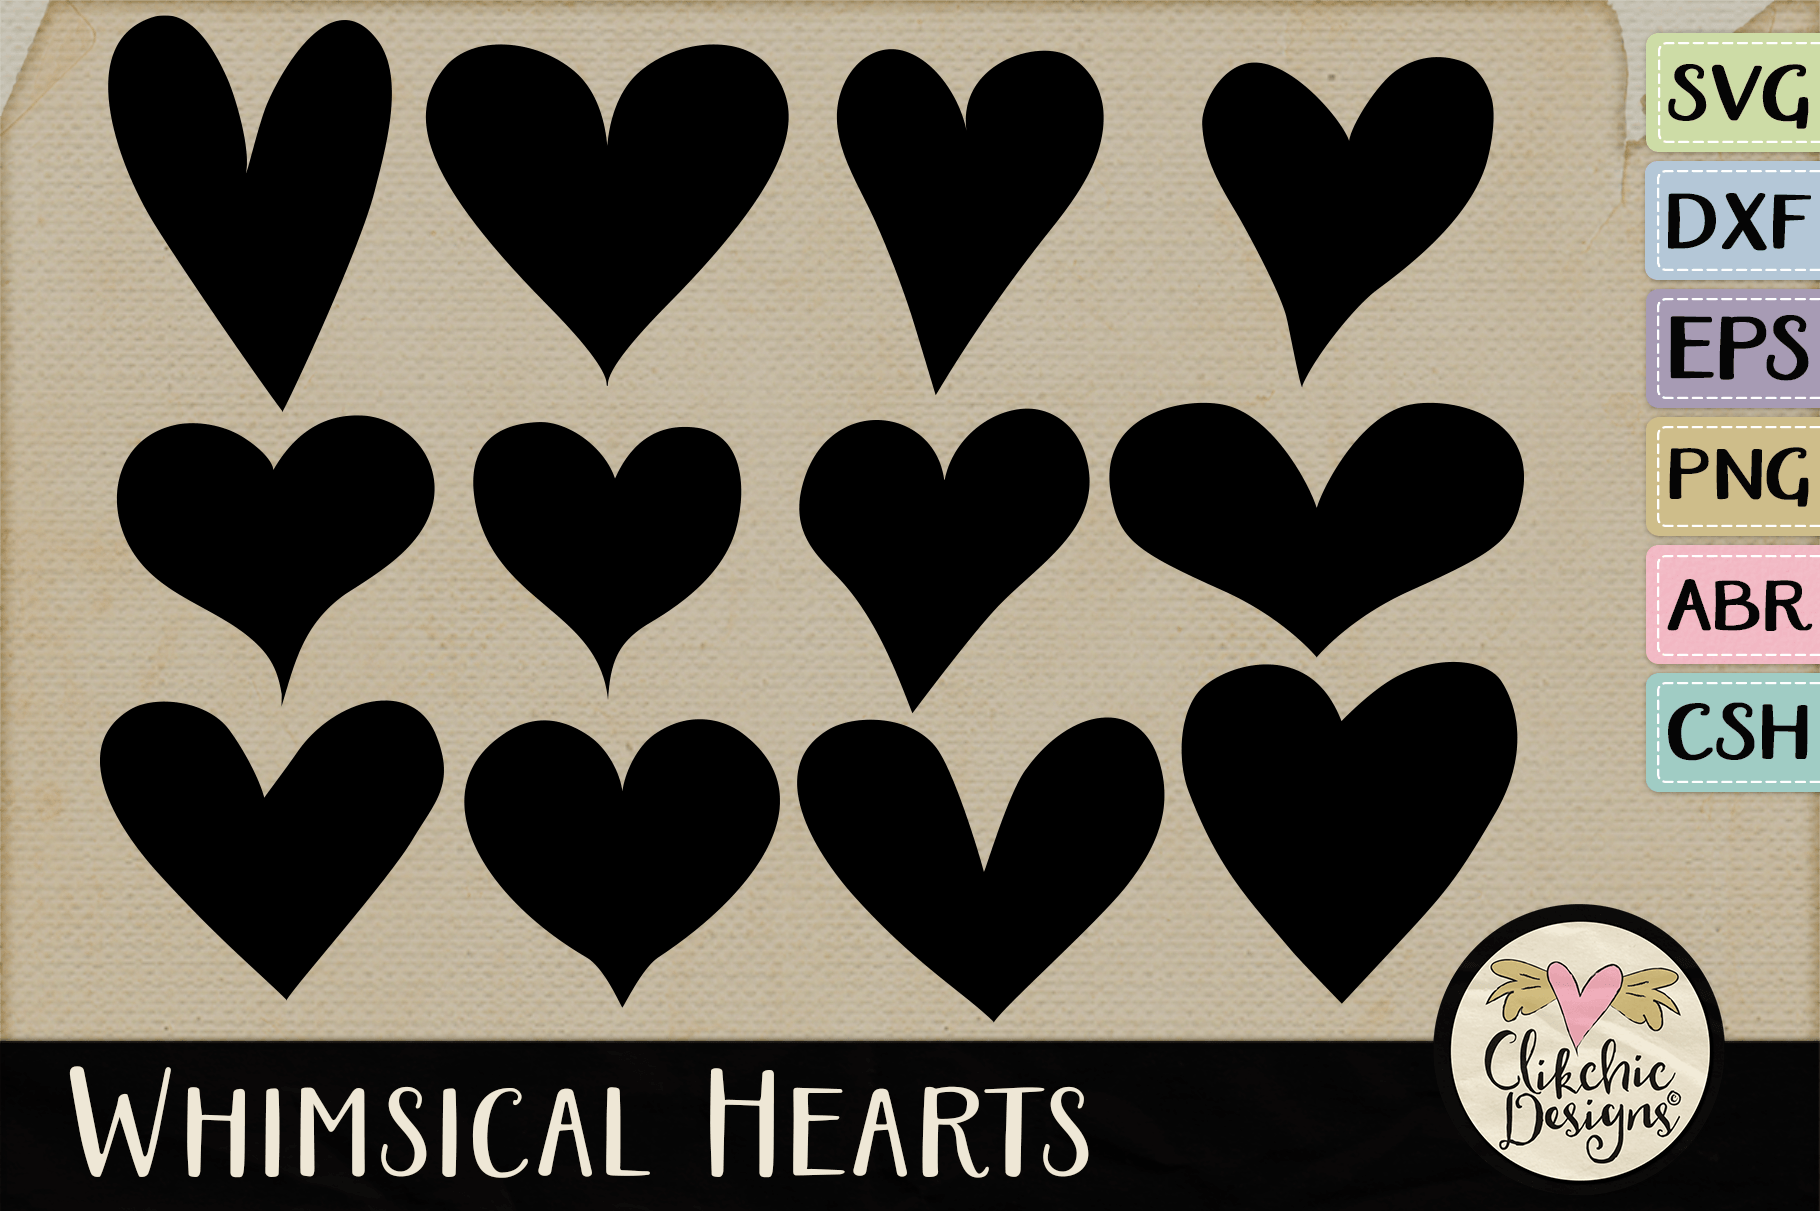 Hearts SVG & DXF Cutting files, Shapes, Photoshop Brushes example image 1